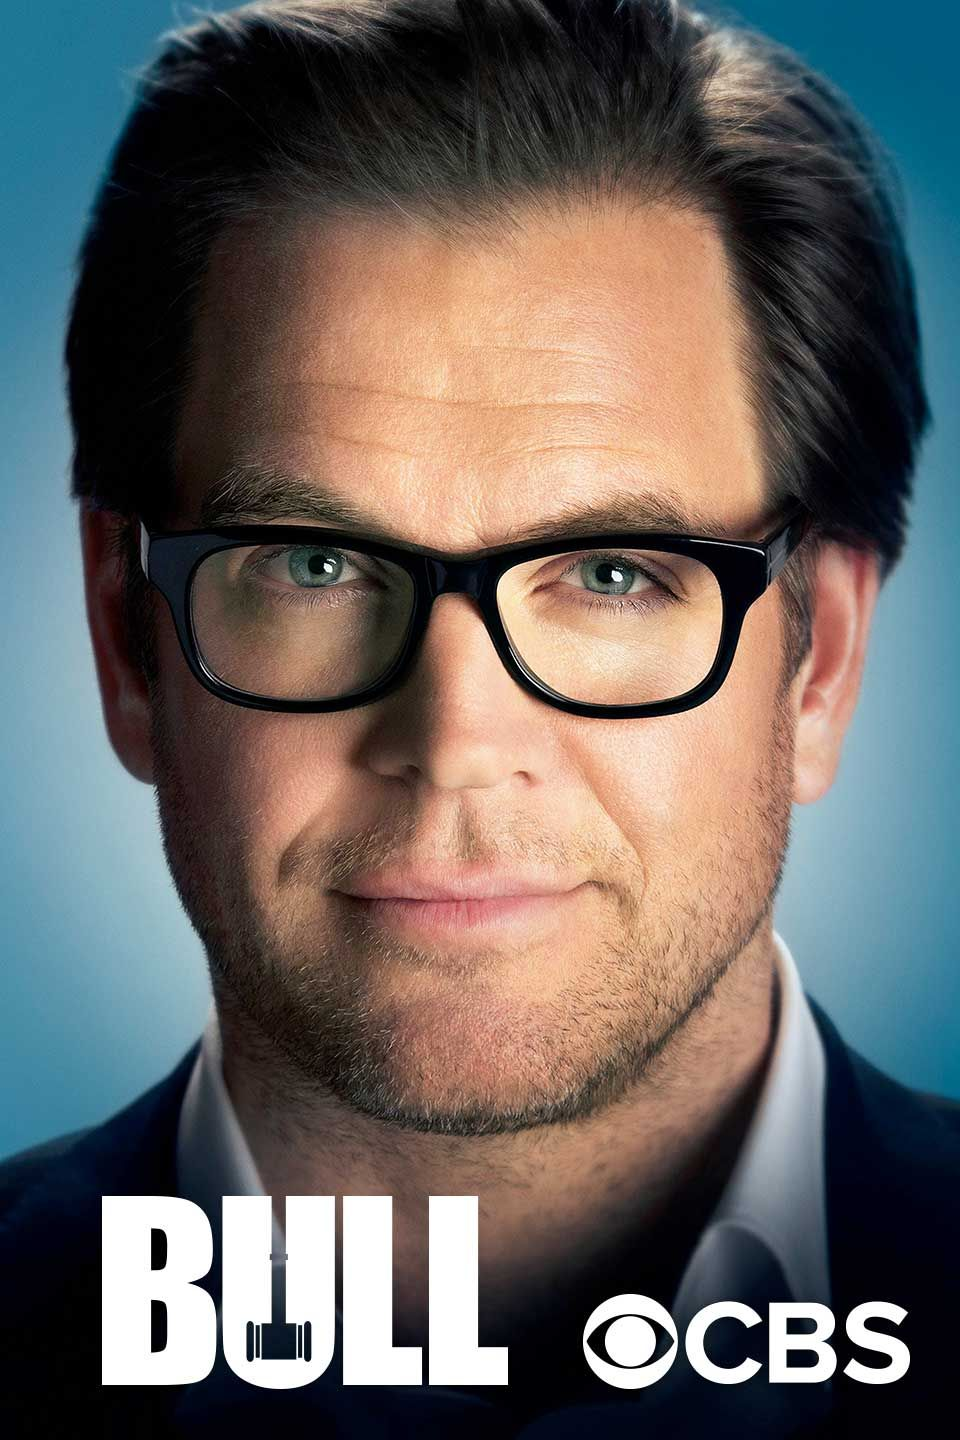 66437f42ce7b6 Watch Bull Season 2 Episode 19 (S02E19) Online Free You re watching Bull  Season 2 Episode 19 (S02E19) online for free. Watch all Bull Episodes at  Binge ...